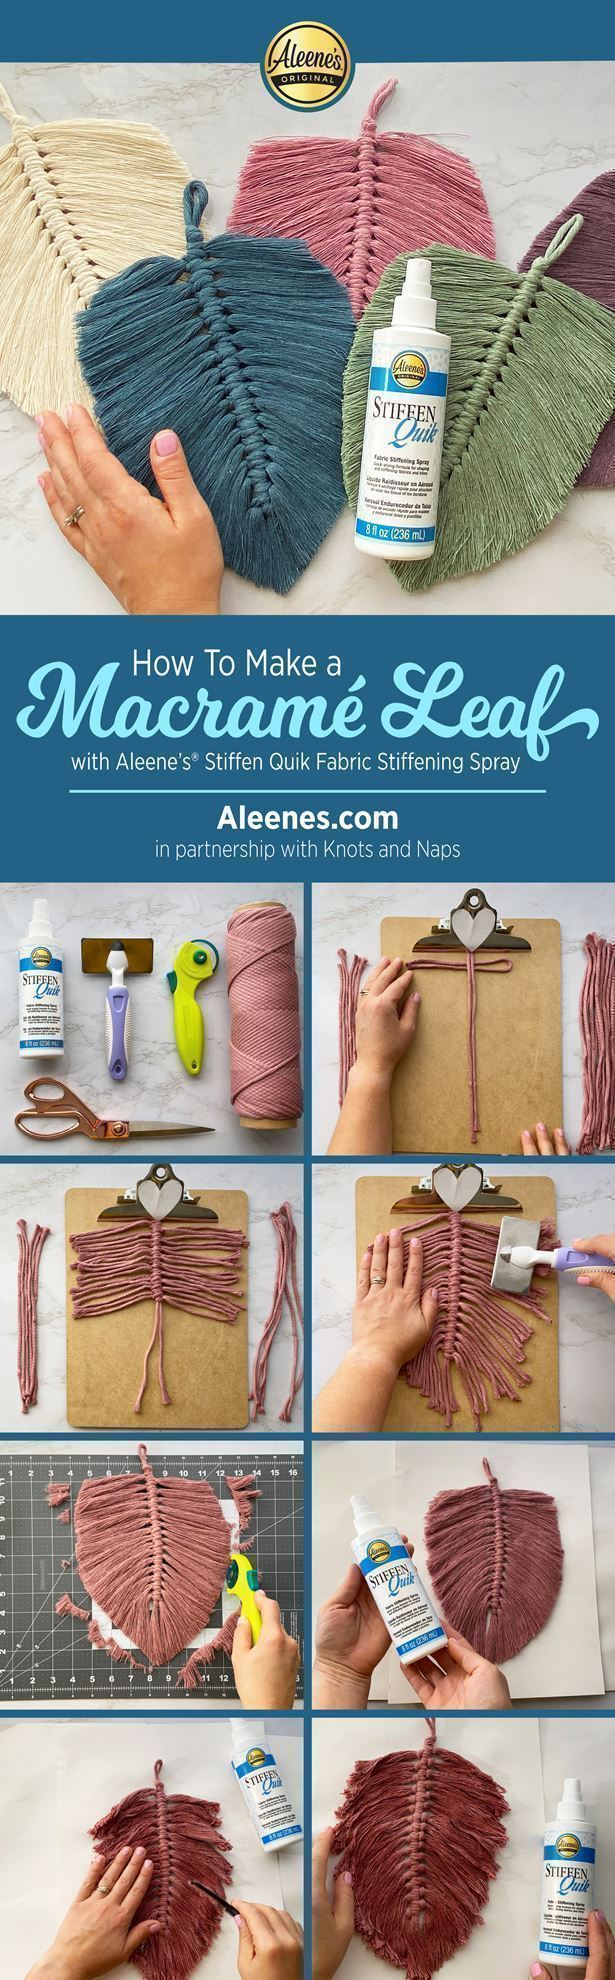 How To Make a Macrame Leaf with Fabric Stiffener